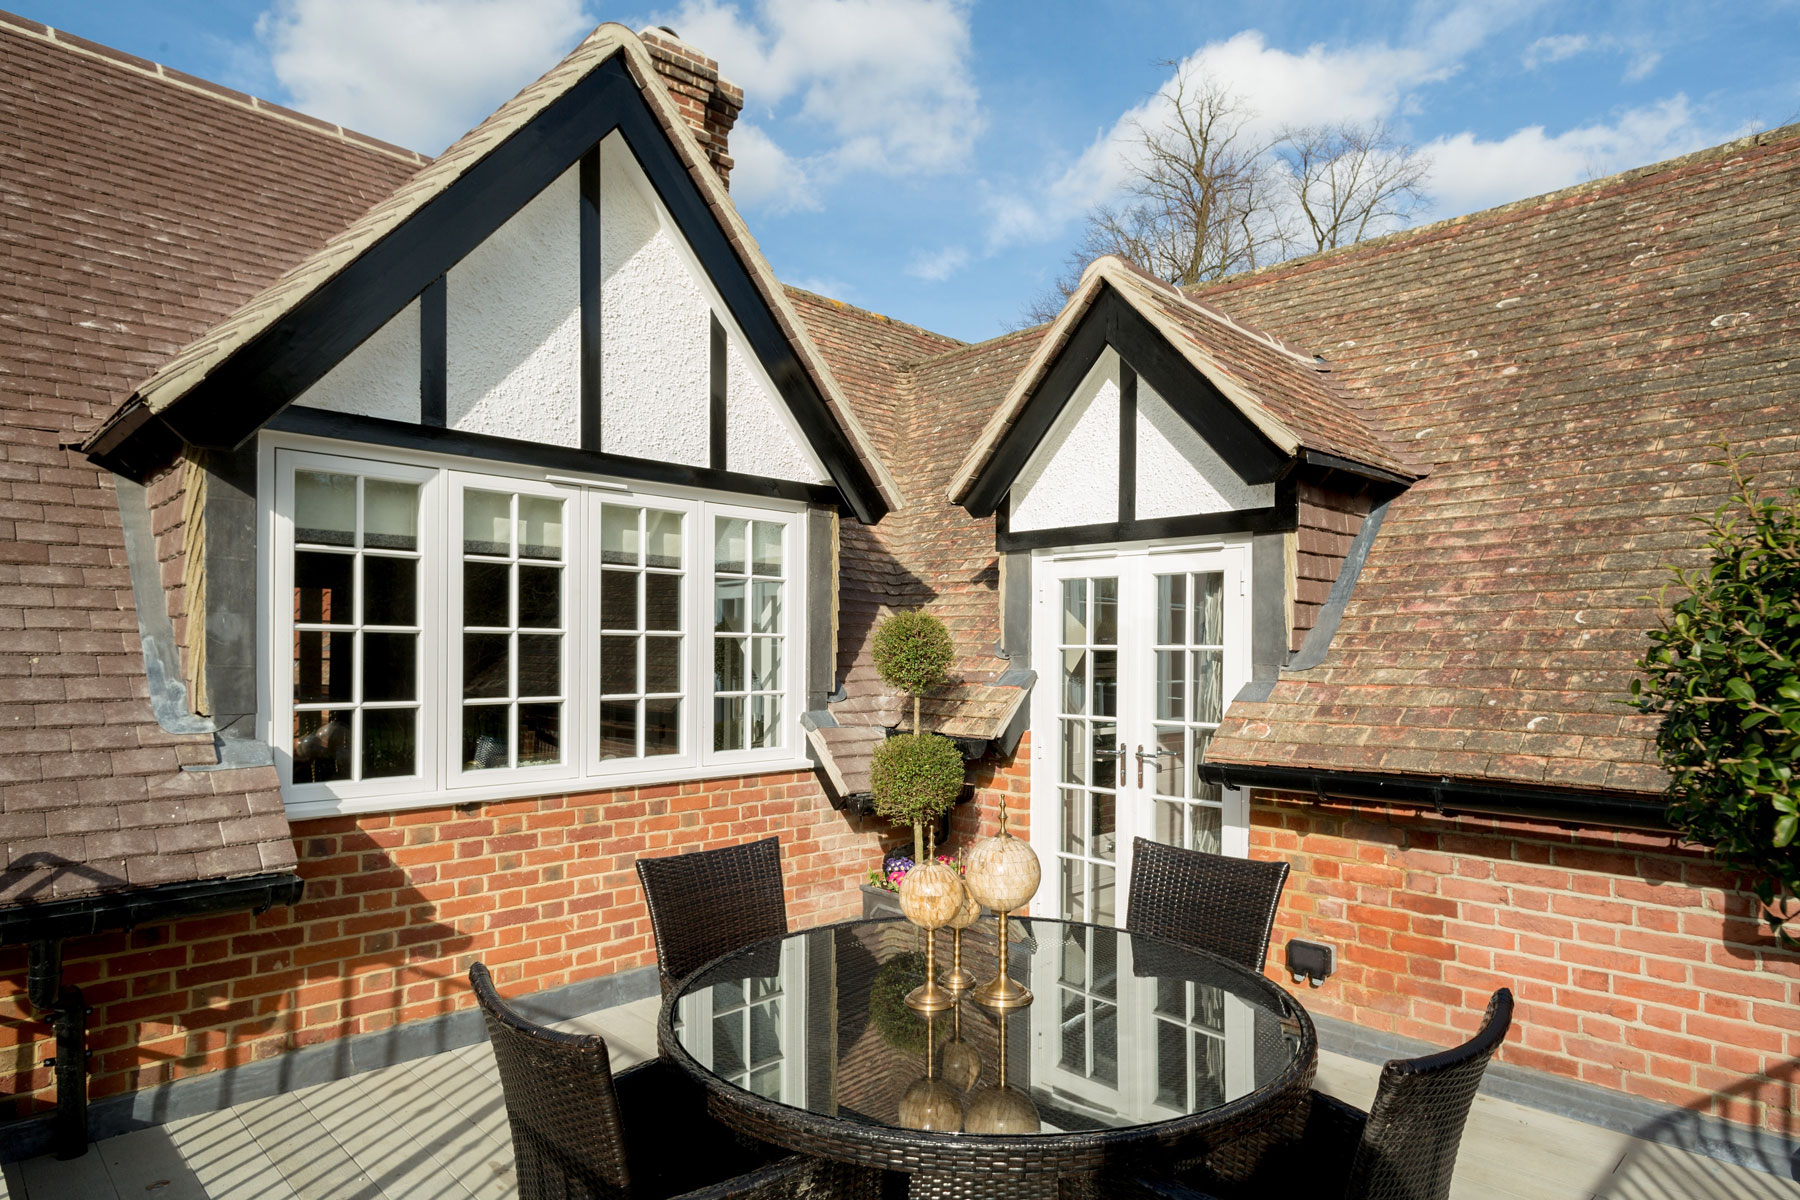 Keston in Kent Proves Popular for Homebuyers in the UK's South-East 2